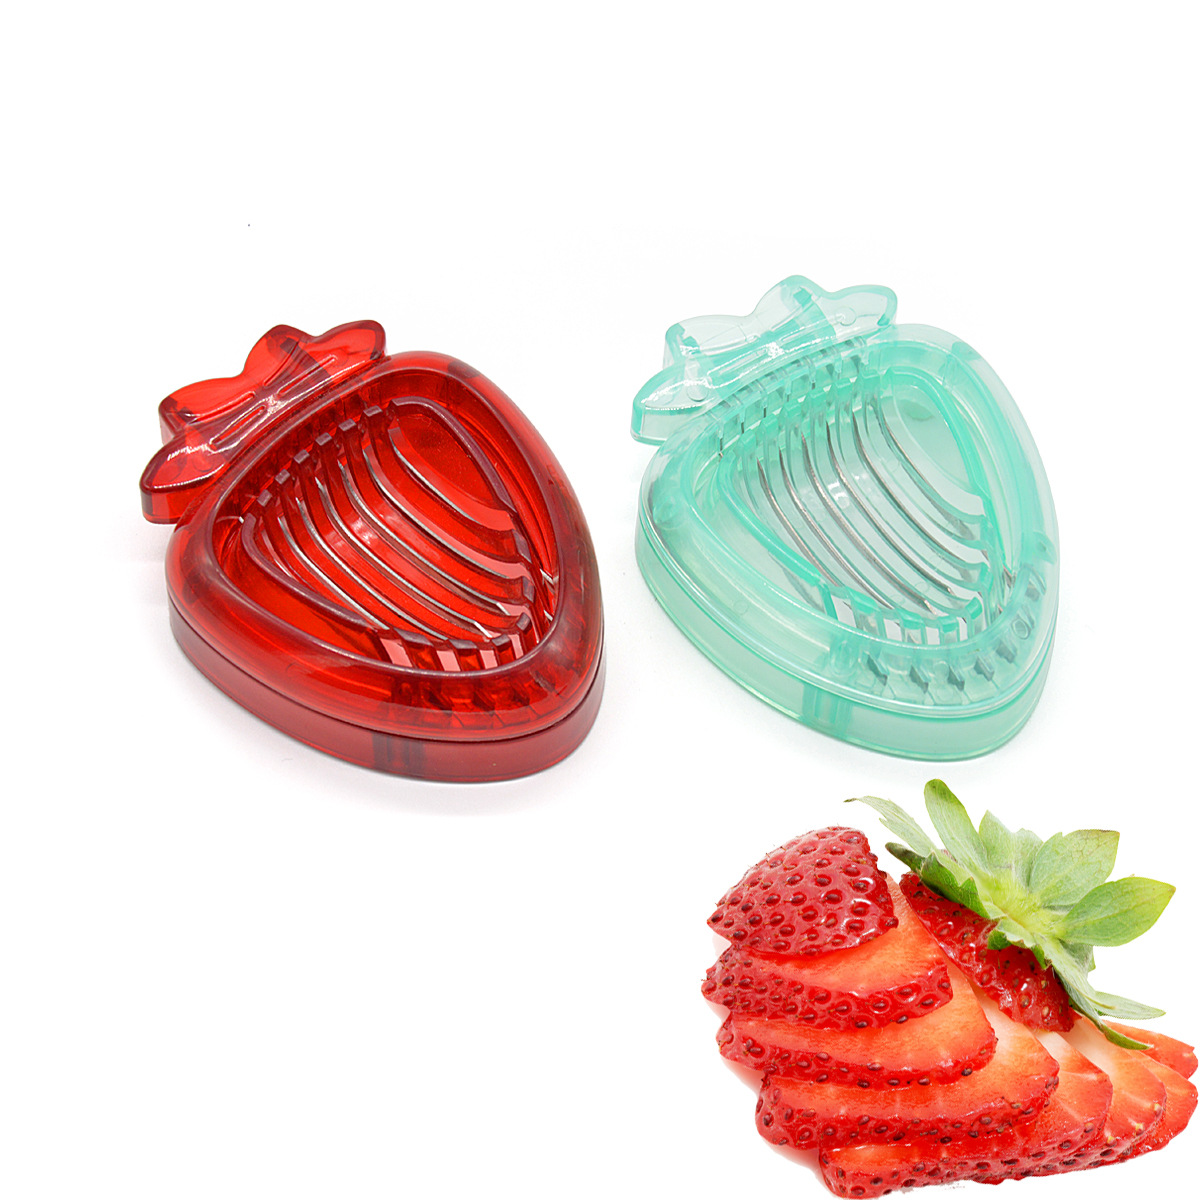 Strawberry Slicer Fruit Cutter Strawberry Cutter Stainless Steel Fruits Cutter Kitchen Tools